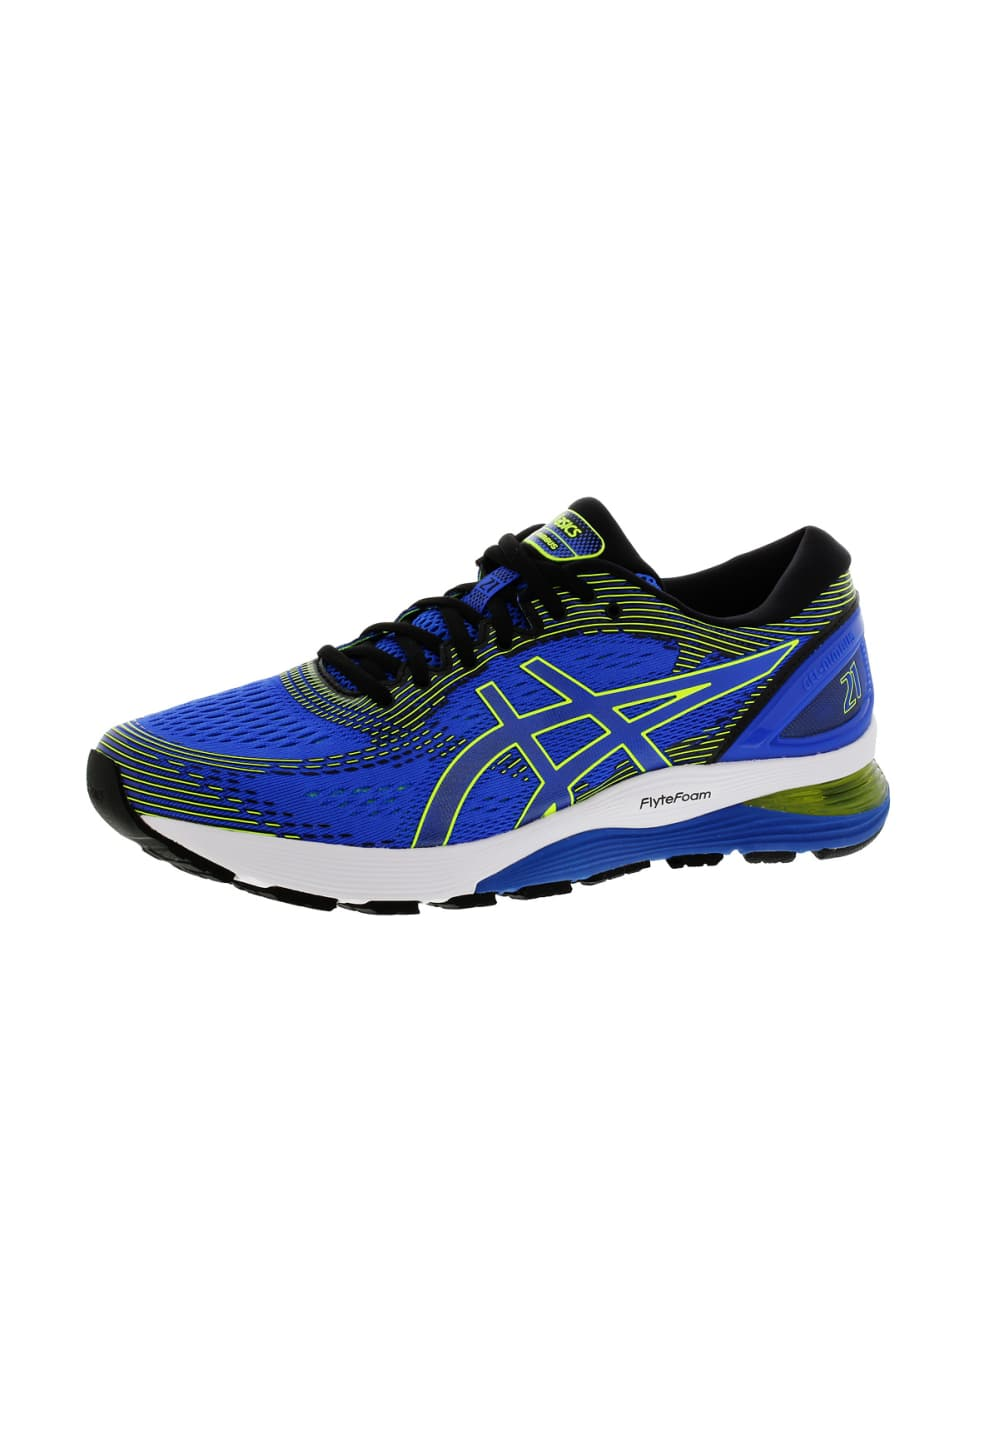 9890452abd ASICS Gel-Nimbus 21 - Running shoes for Men - Blue